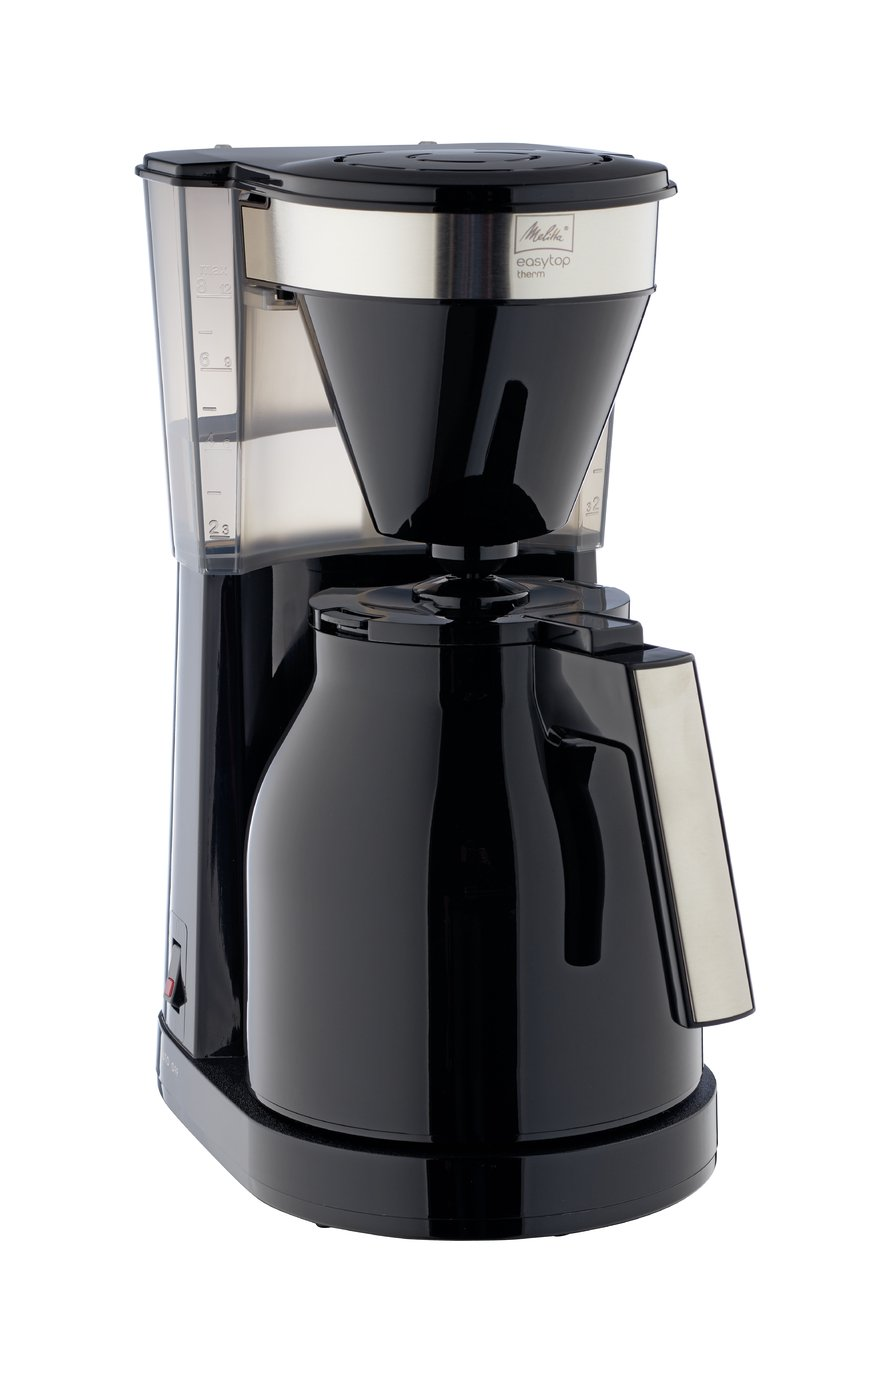 Melitta 1023-08 Easytop Therm Filter Coffee Machine